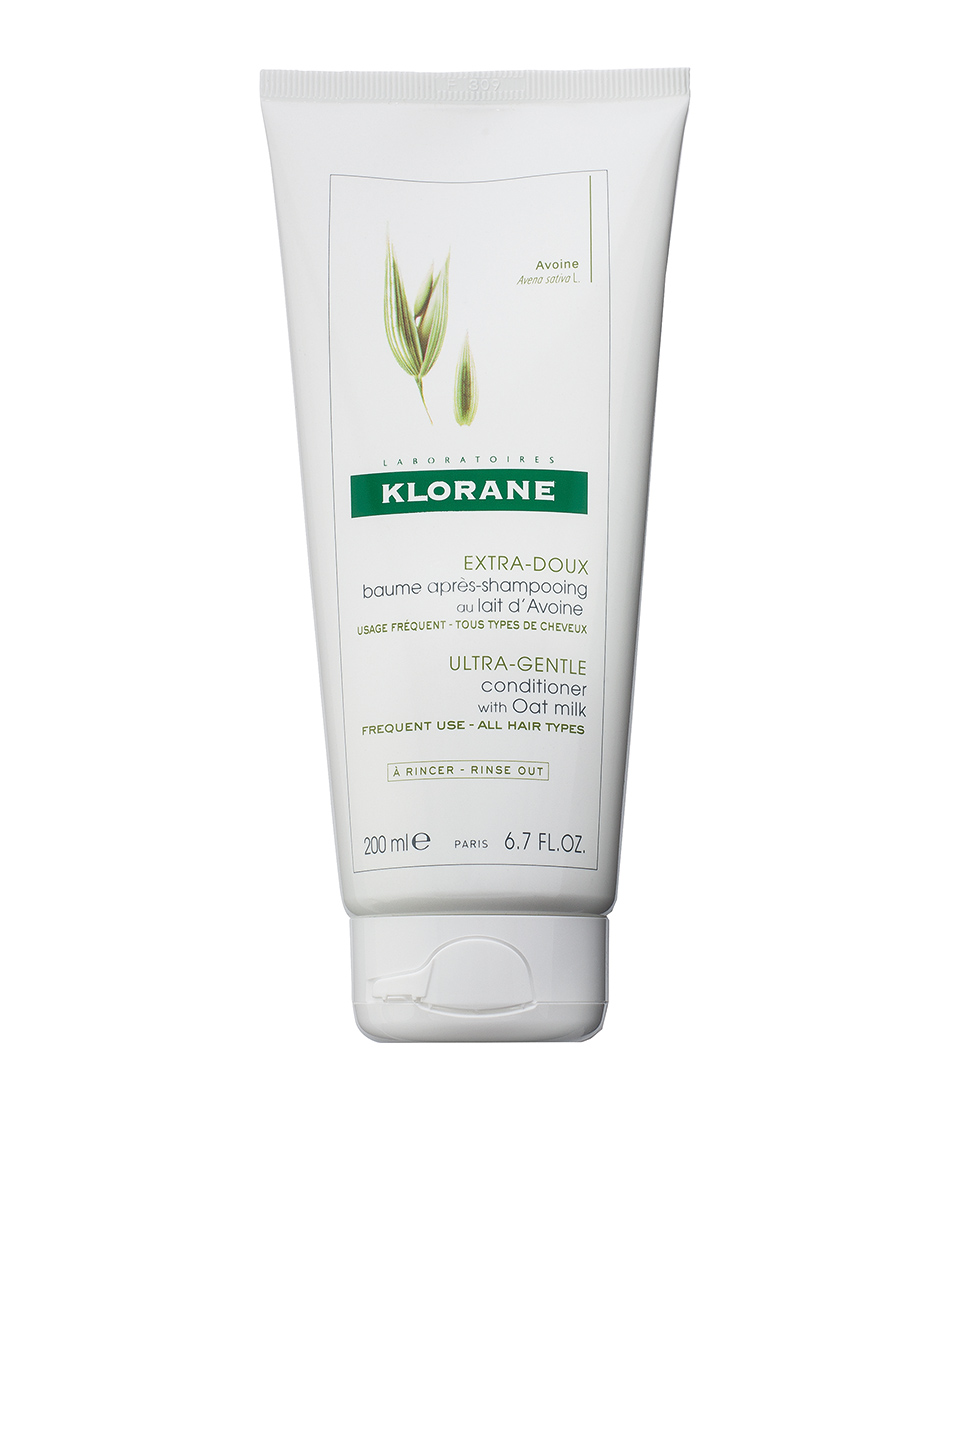 Klorane Conditioner with Oat Milk in